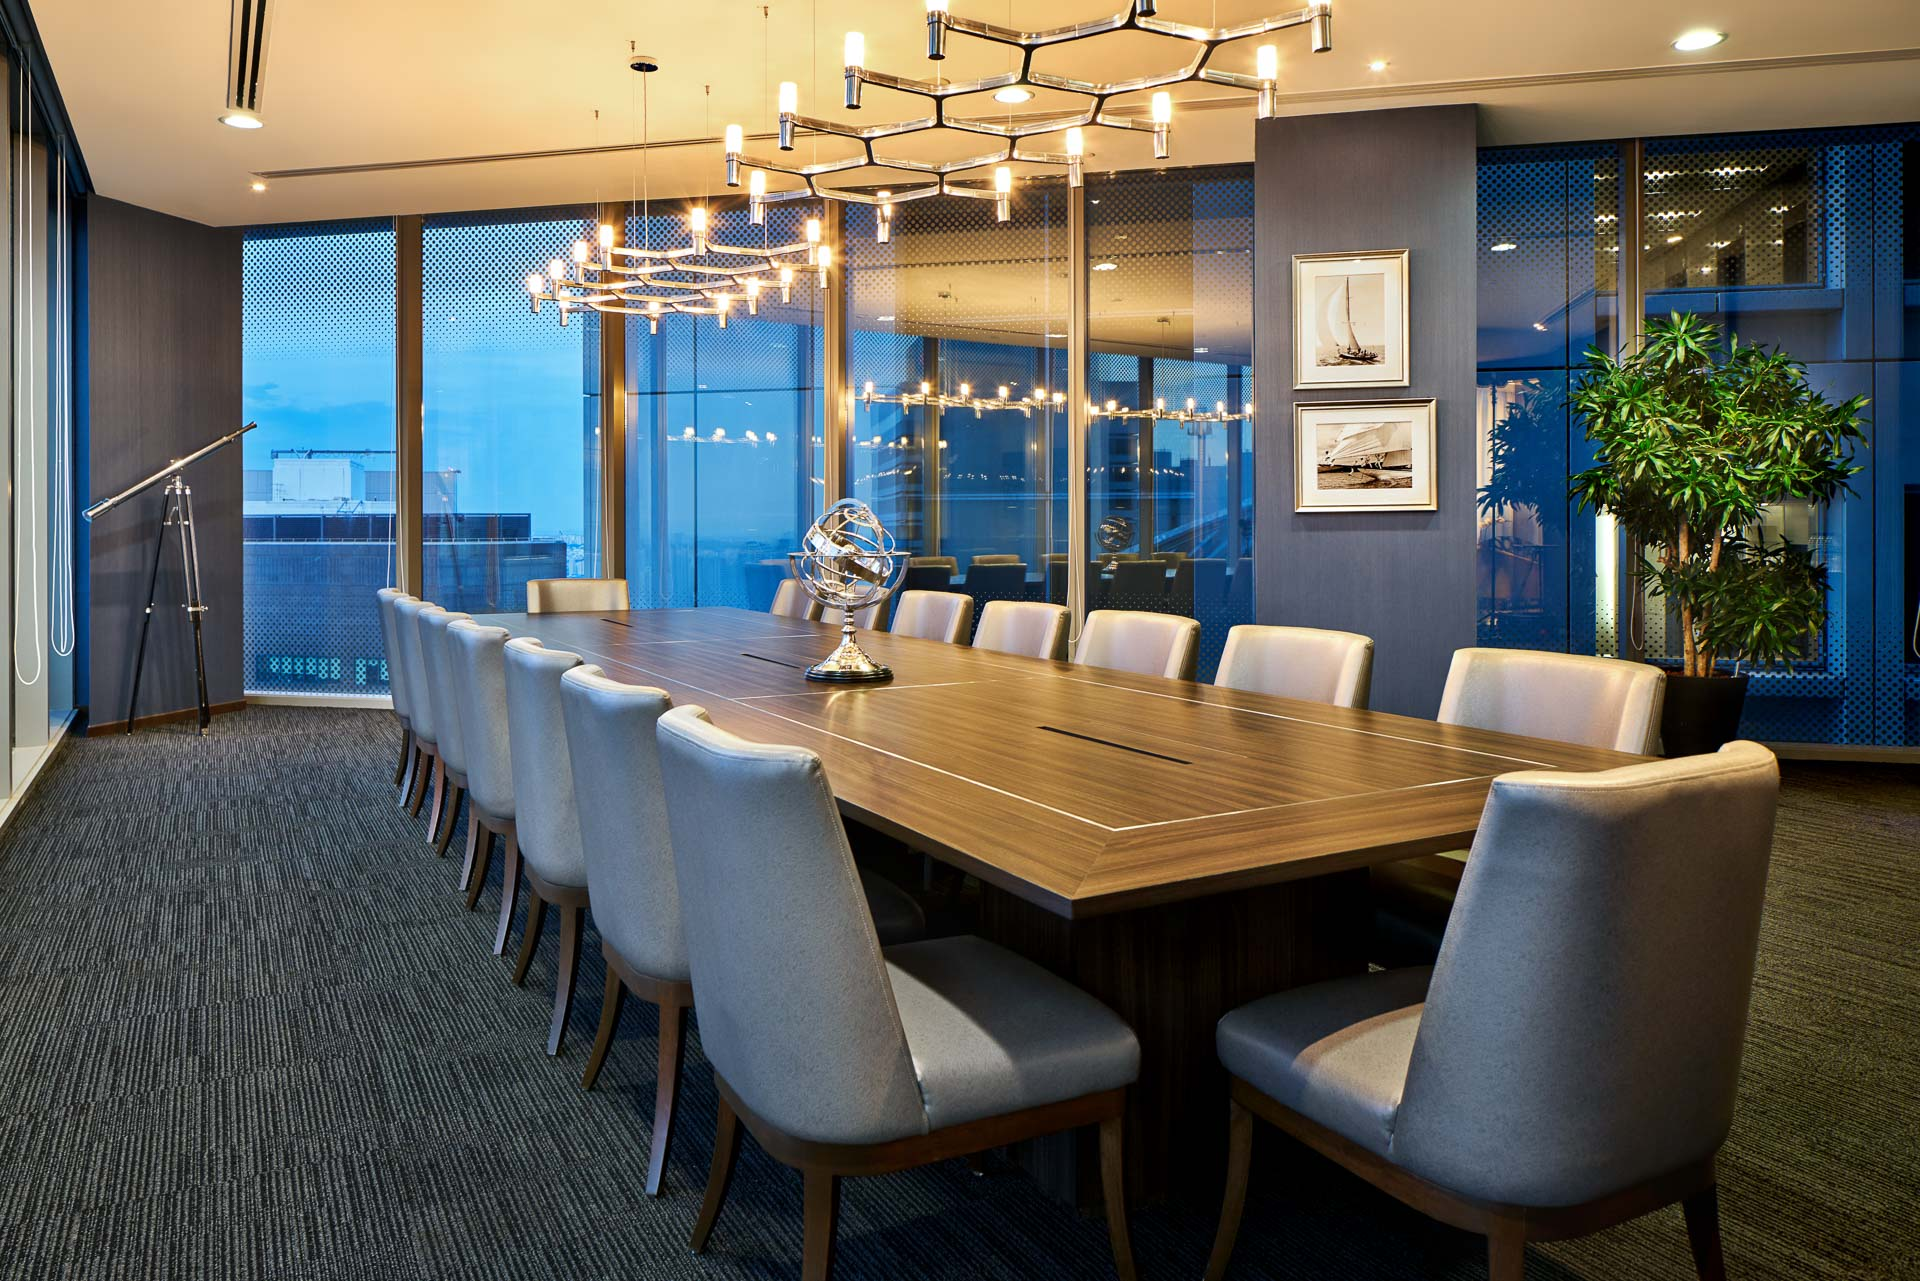 Interior Photography Of The Night View Of The Sky Premium Boardroom In  Singapore